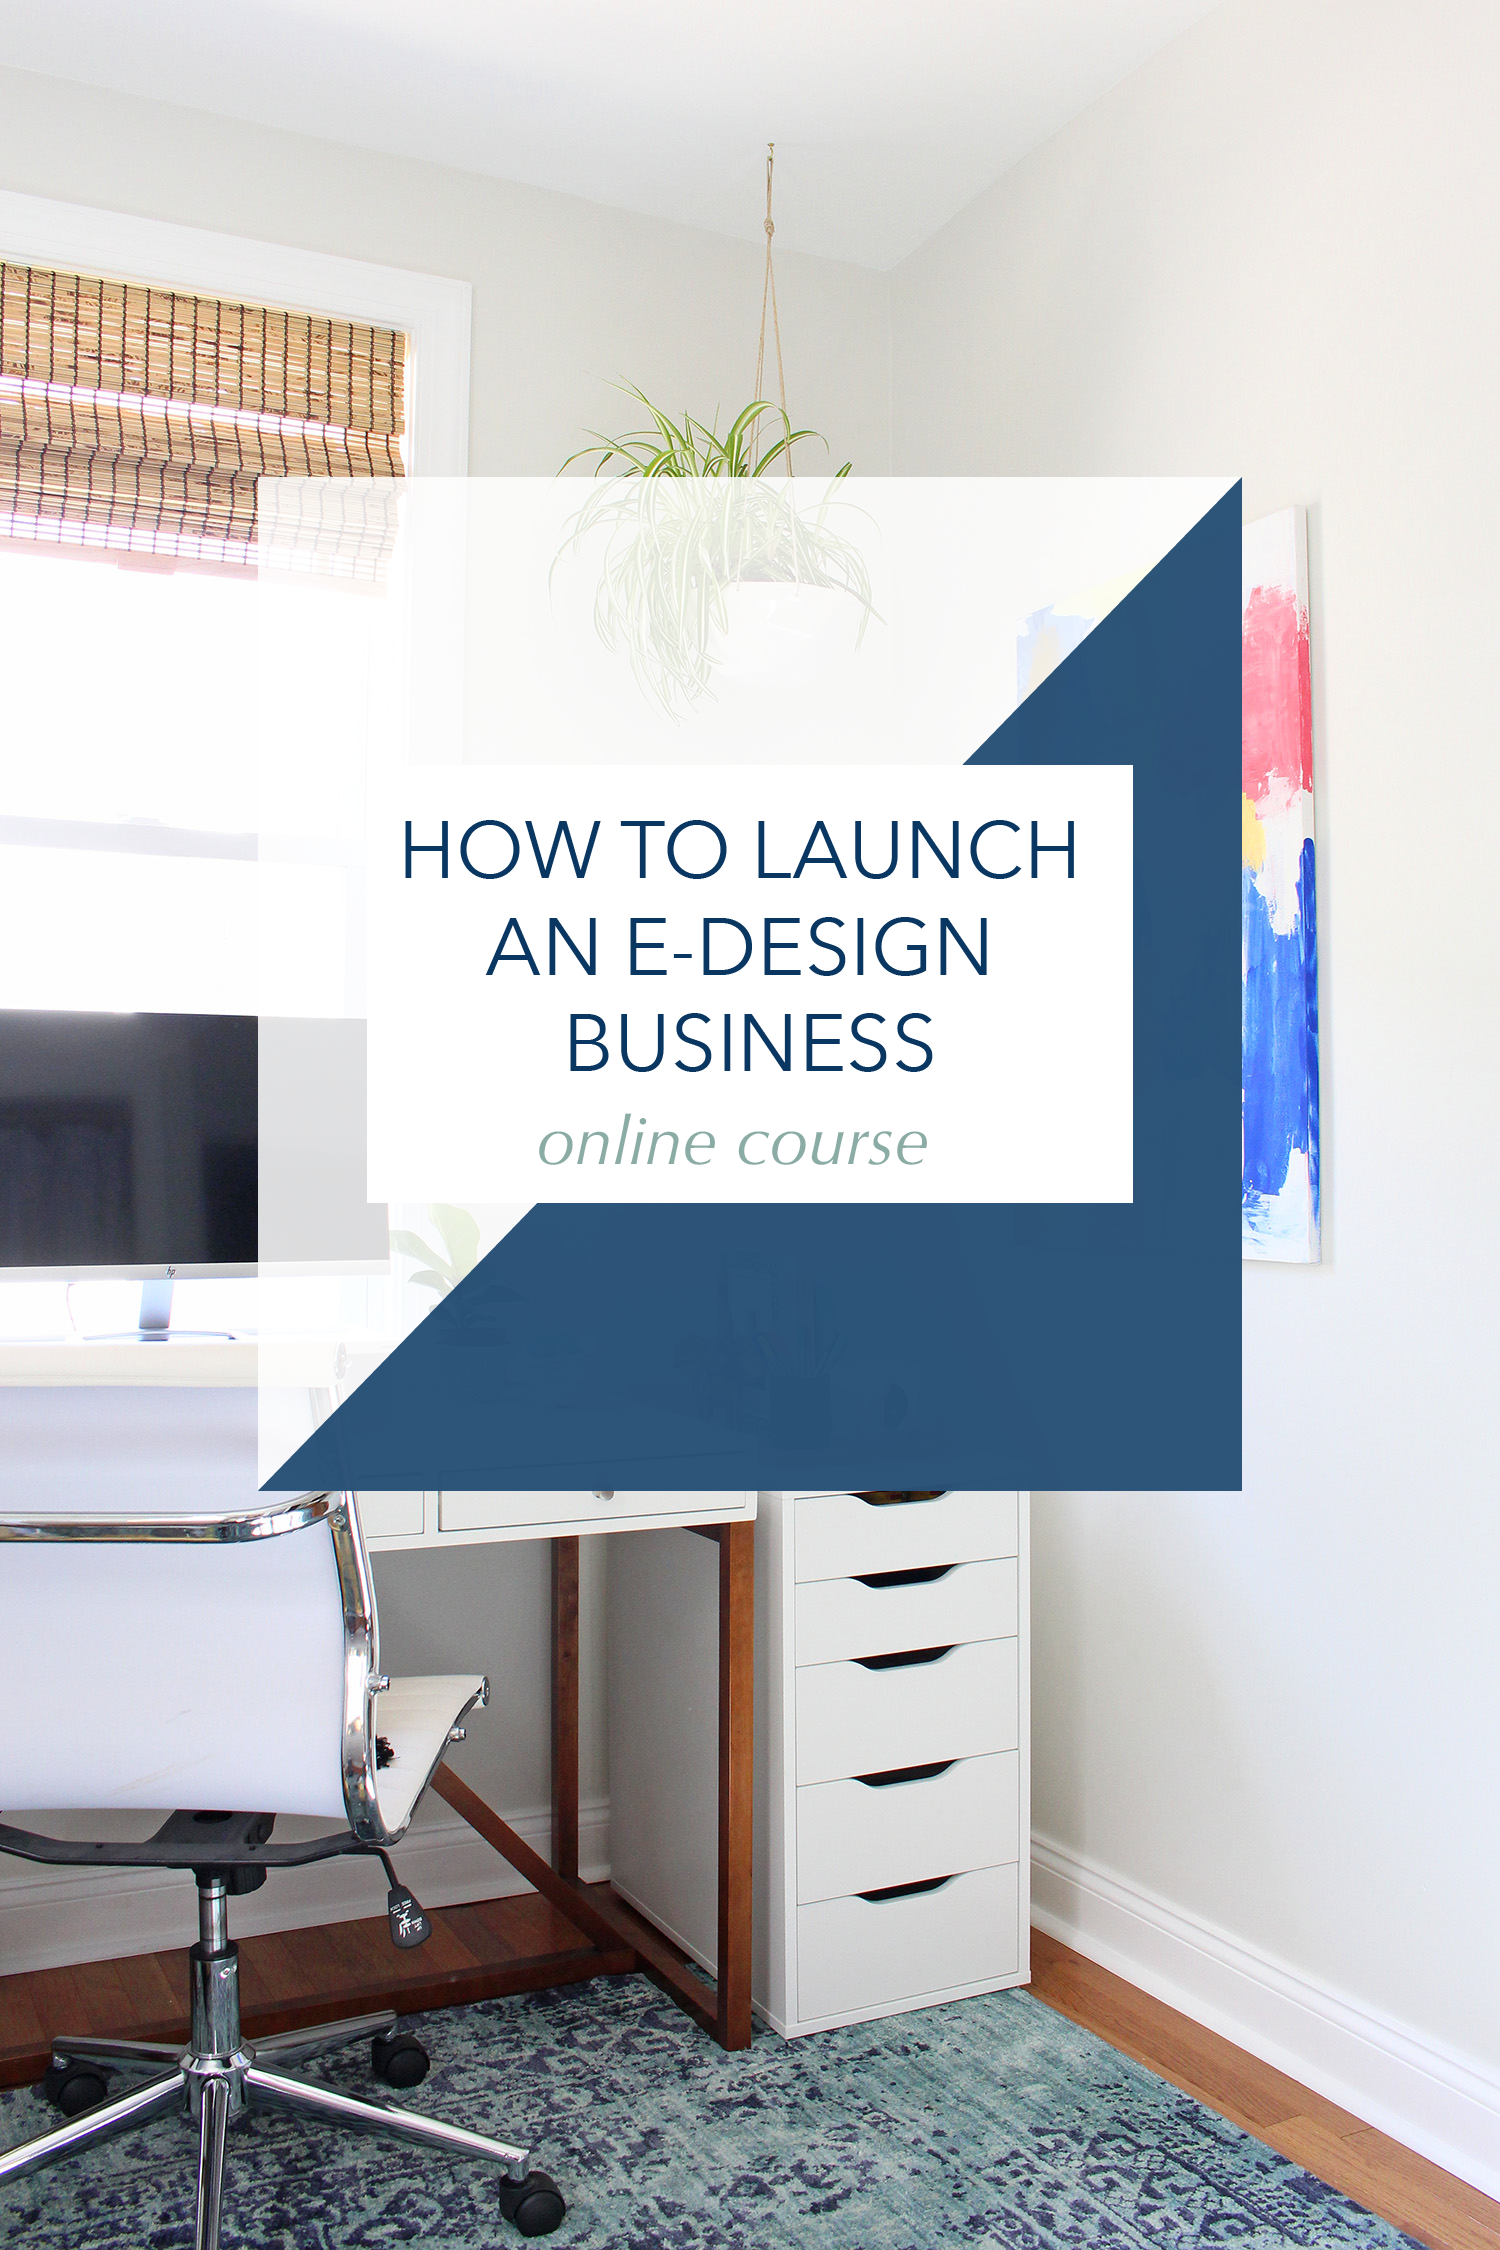 Want to learn how to start your own e-design business? This online course is ready to help you launch! Chaney Widmer from Mix & Match Design Company will teach you how to get started quickly and begin offering your online interior design services to clients before you know it.